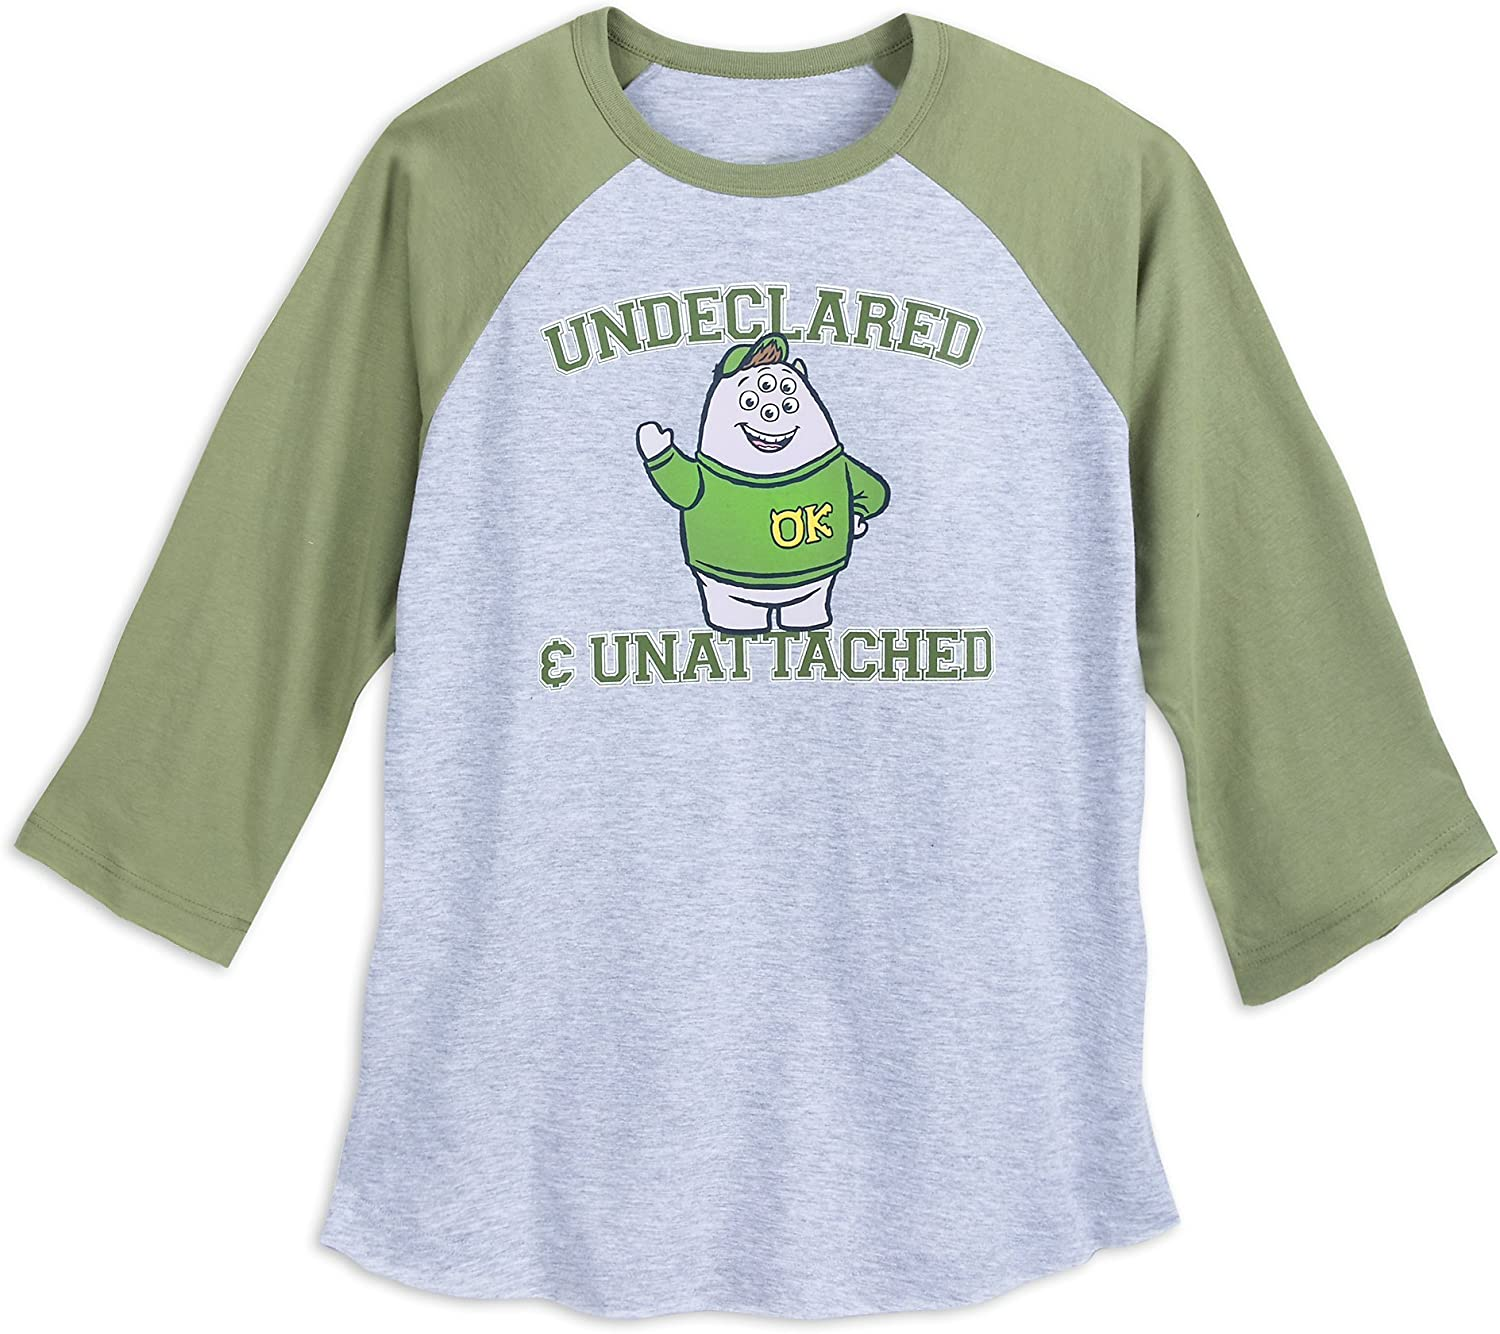 Amazon Com Disney Squishy Undeclared Unattached T Shirt For Adults Monsters University Green Clothing